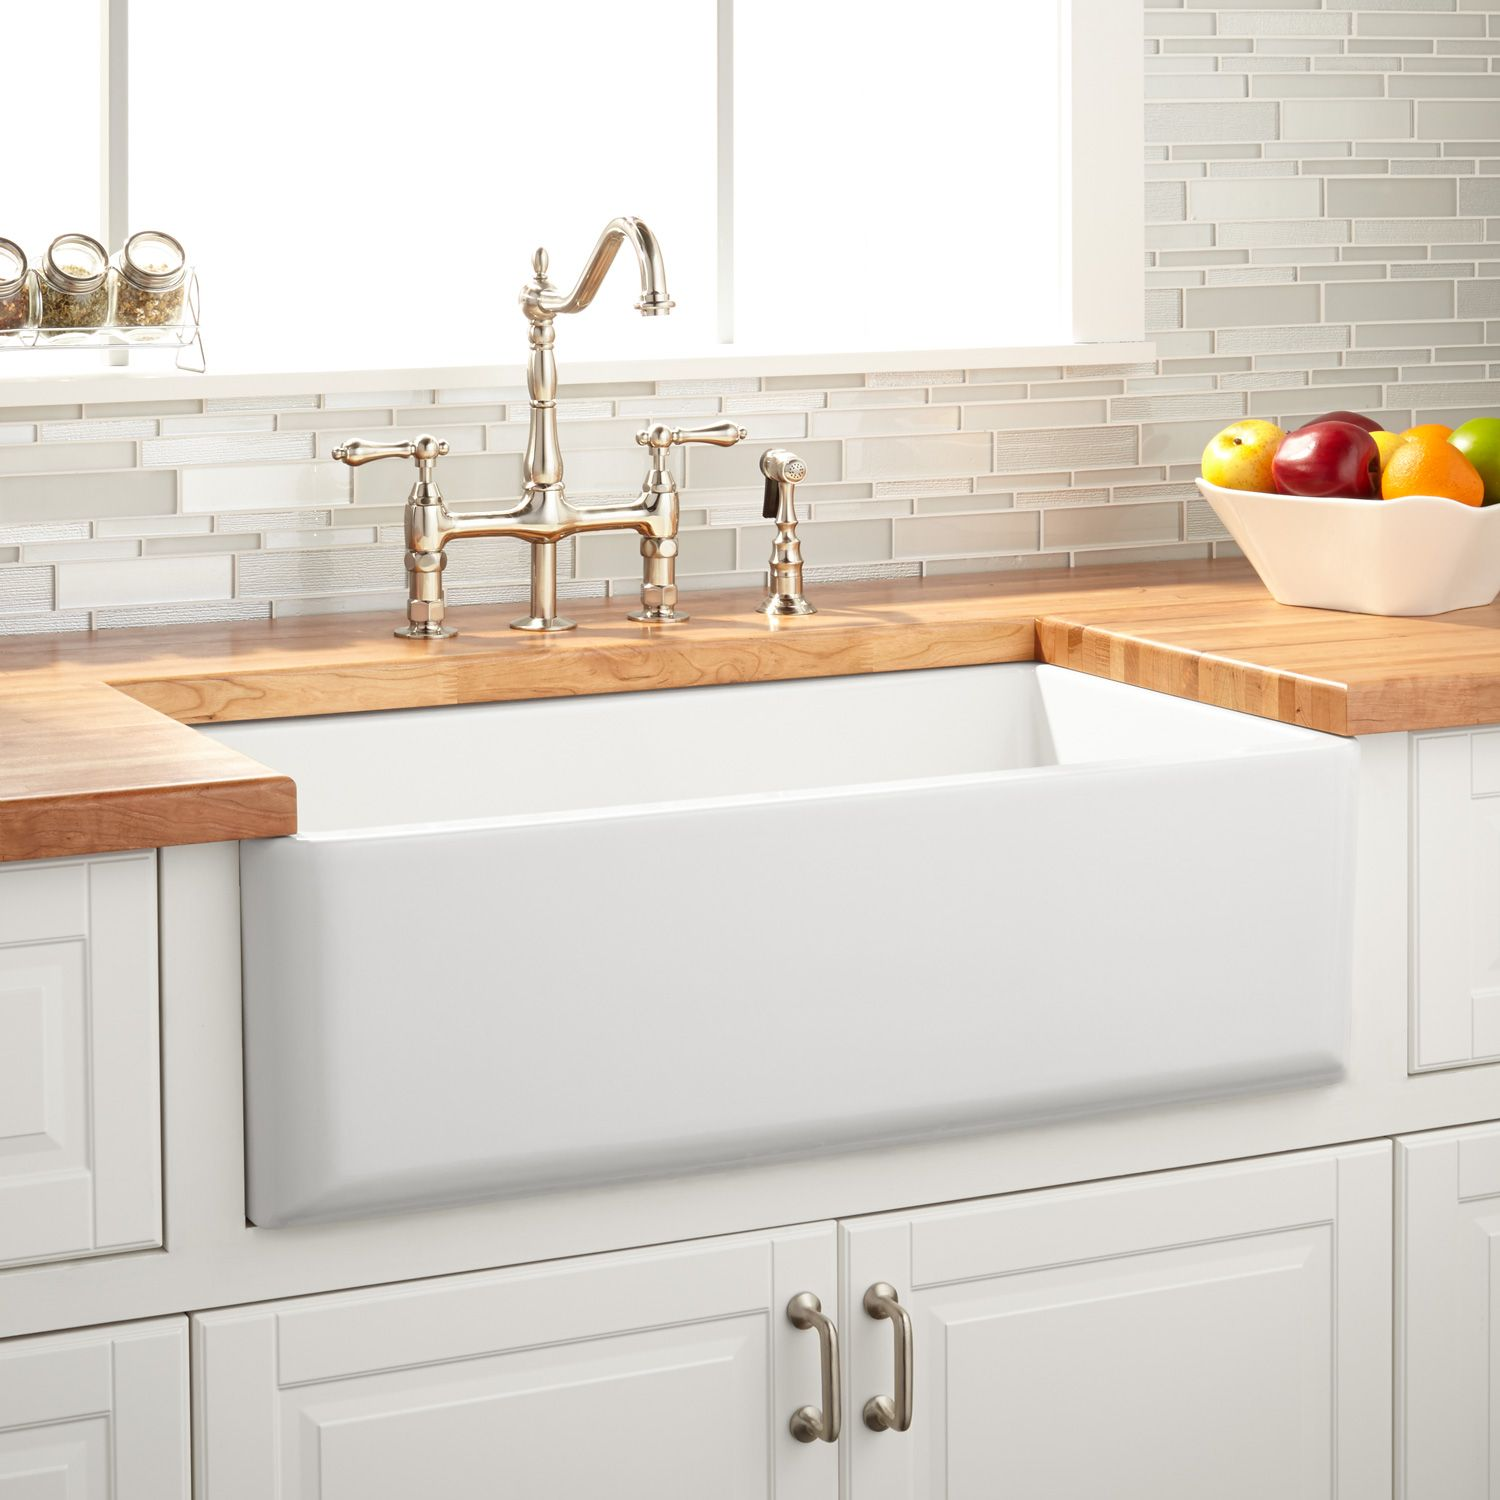 Risinger Sink >> 30 Risinger Fireclay Farmhouse Sink Smooth Apron White In 2018